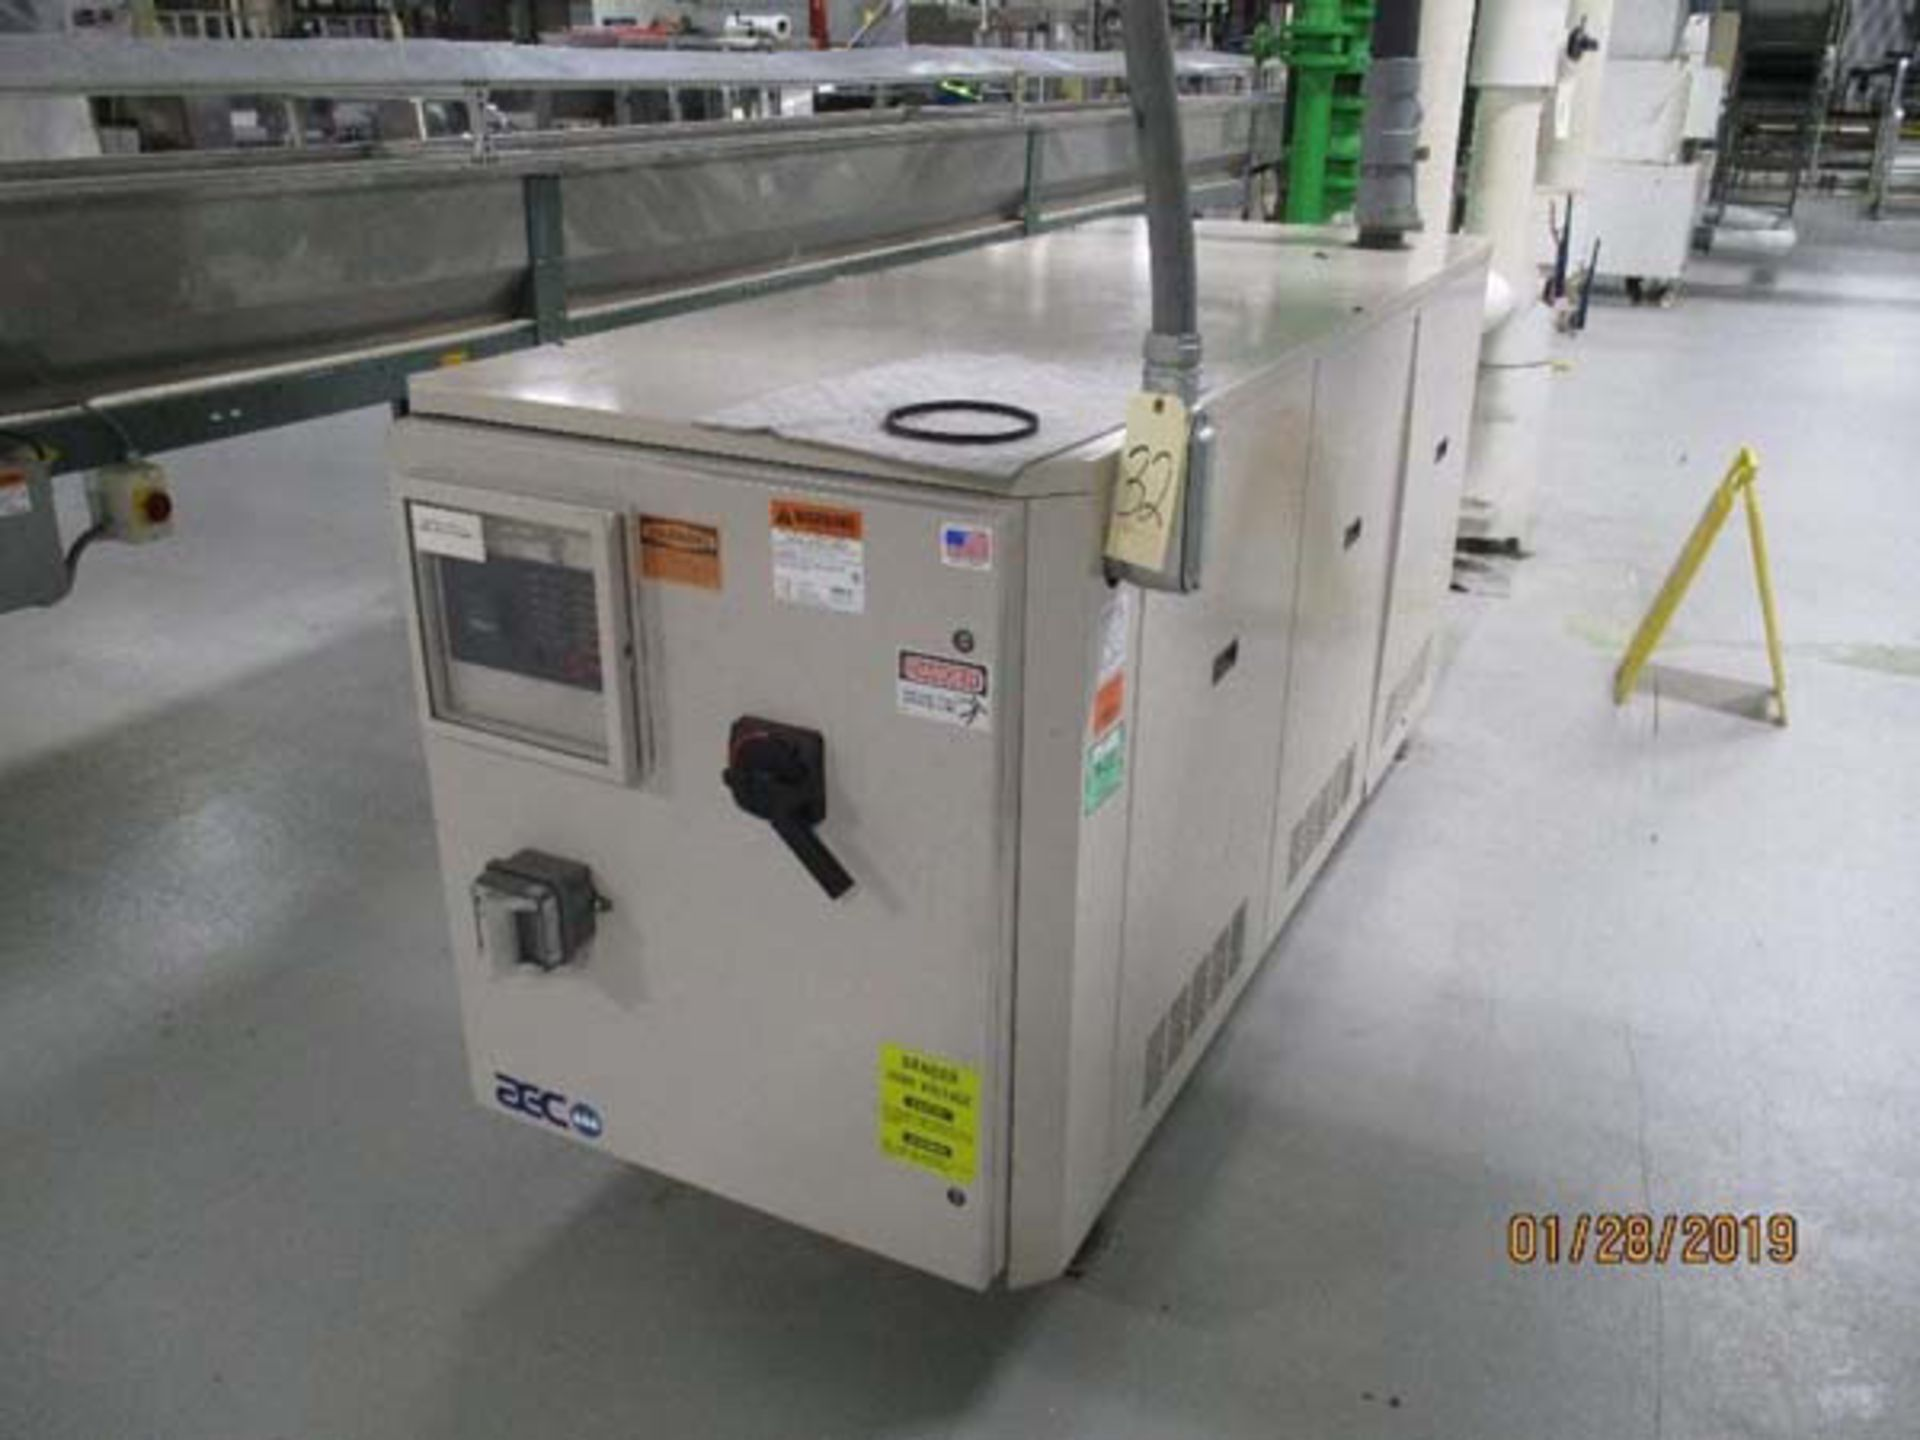 Lot 4 - AEC Refrigerated Water Chiller   30-Ton, Mdl: PSW-30, S/N: 35E0198 - 8467P